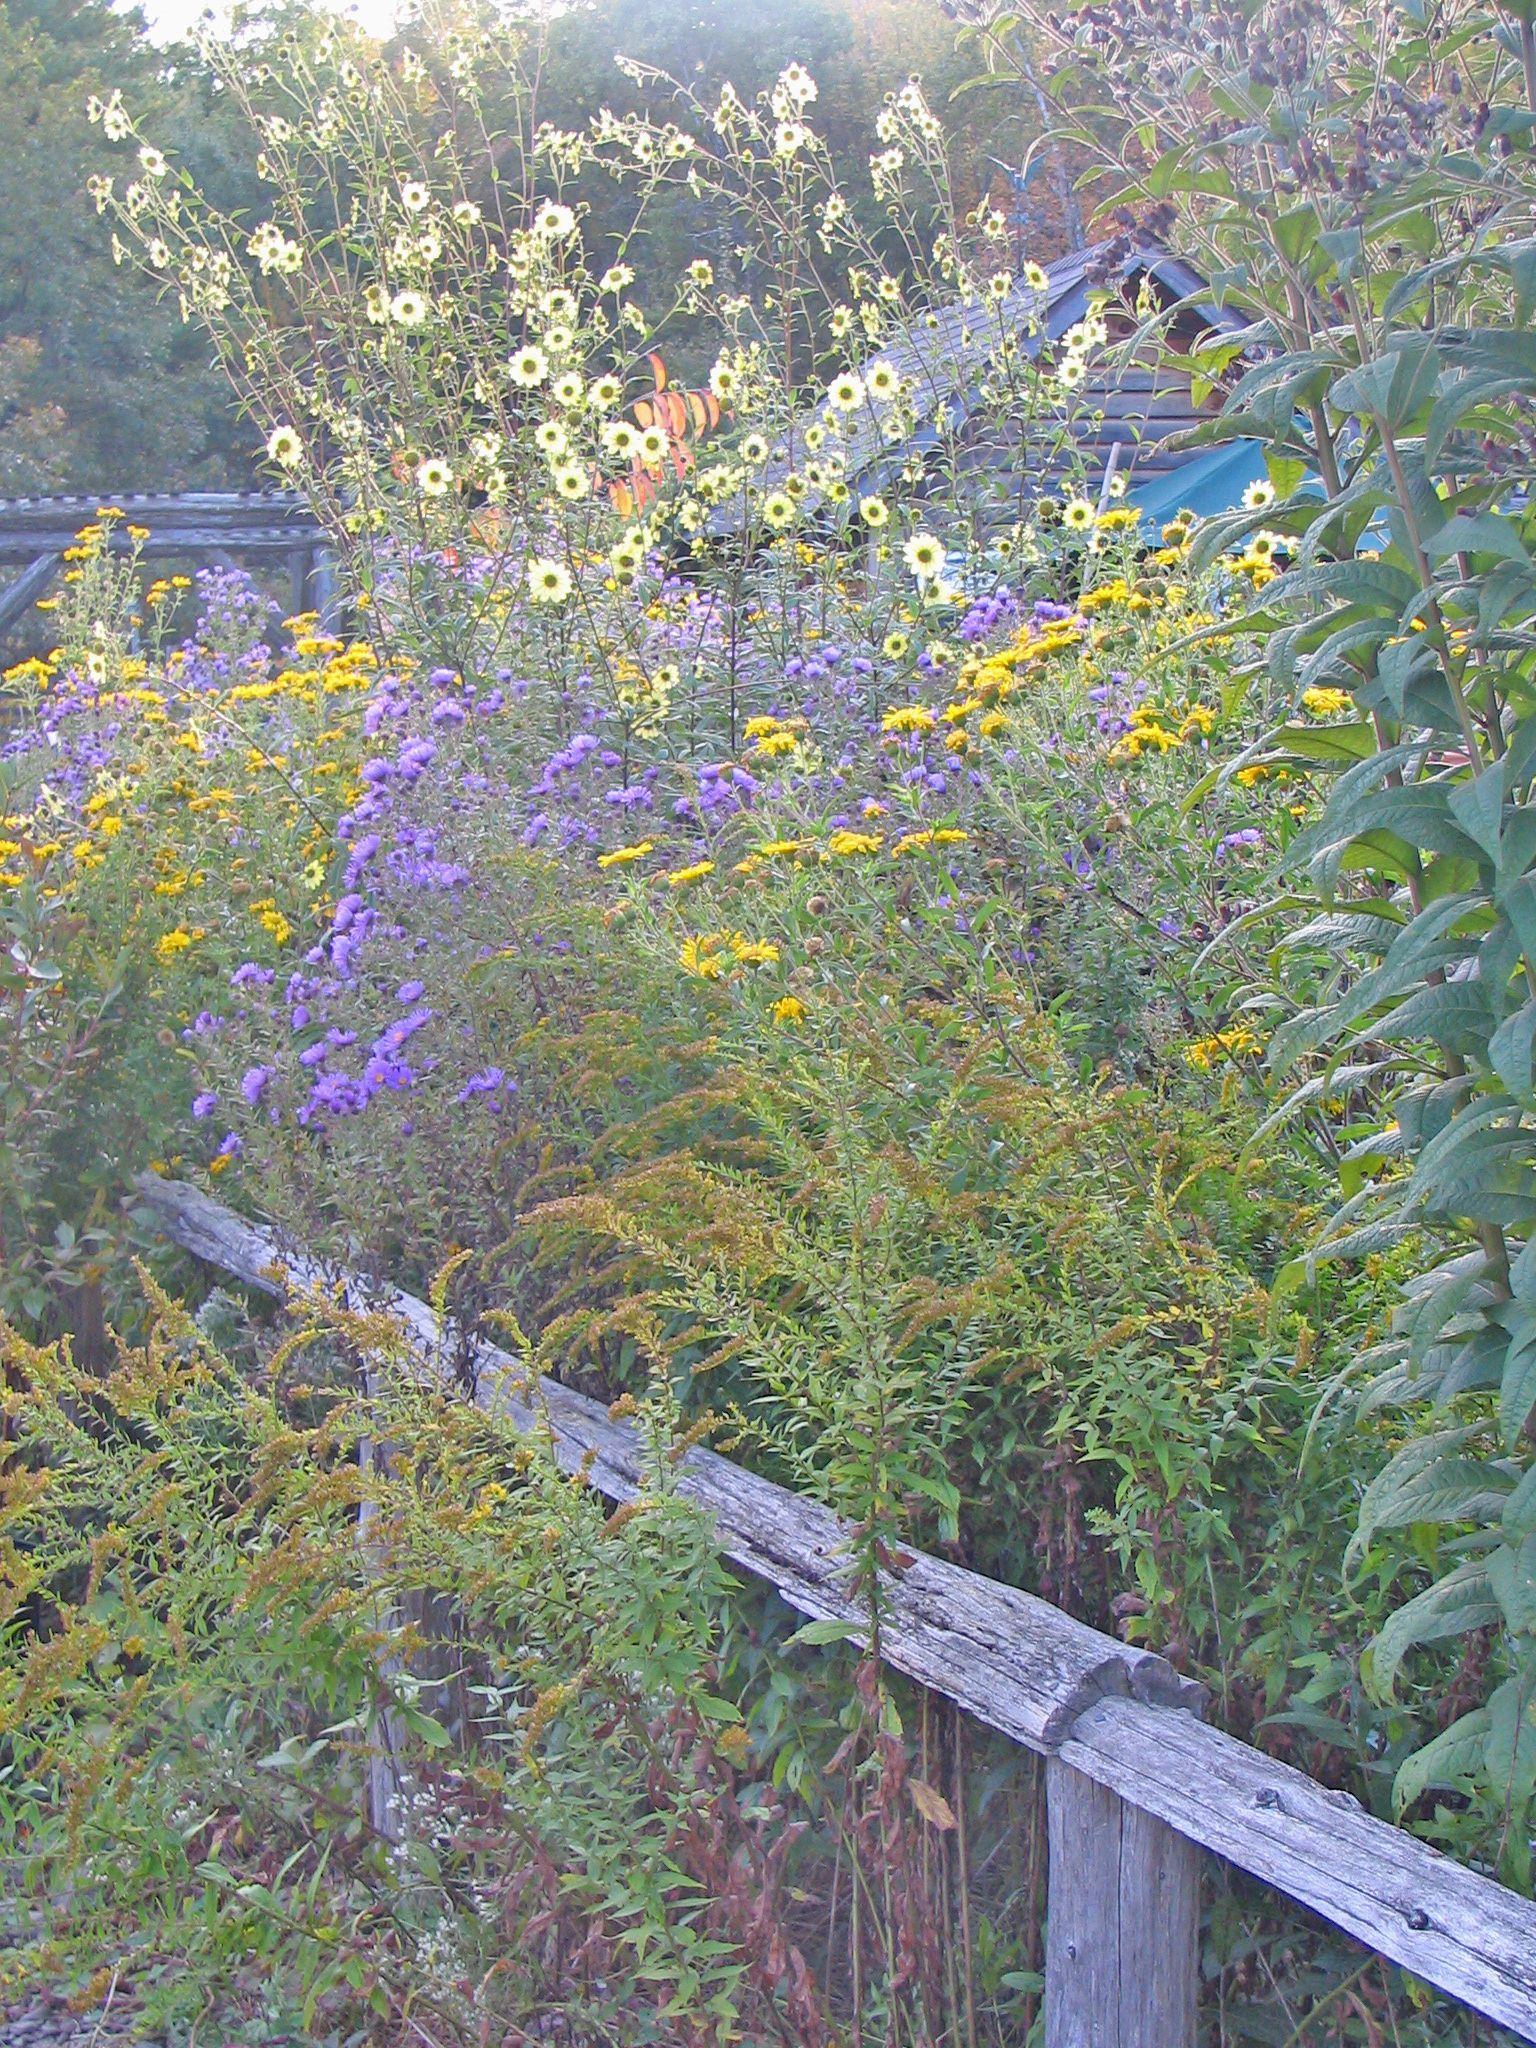 Butterfly Garden With Goldenrod, New York Ironweed, Tall Coreopsis, Asters  And Perennial Sunflowers